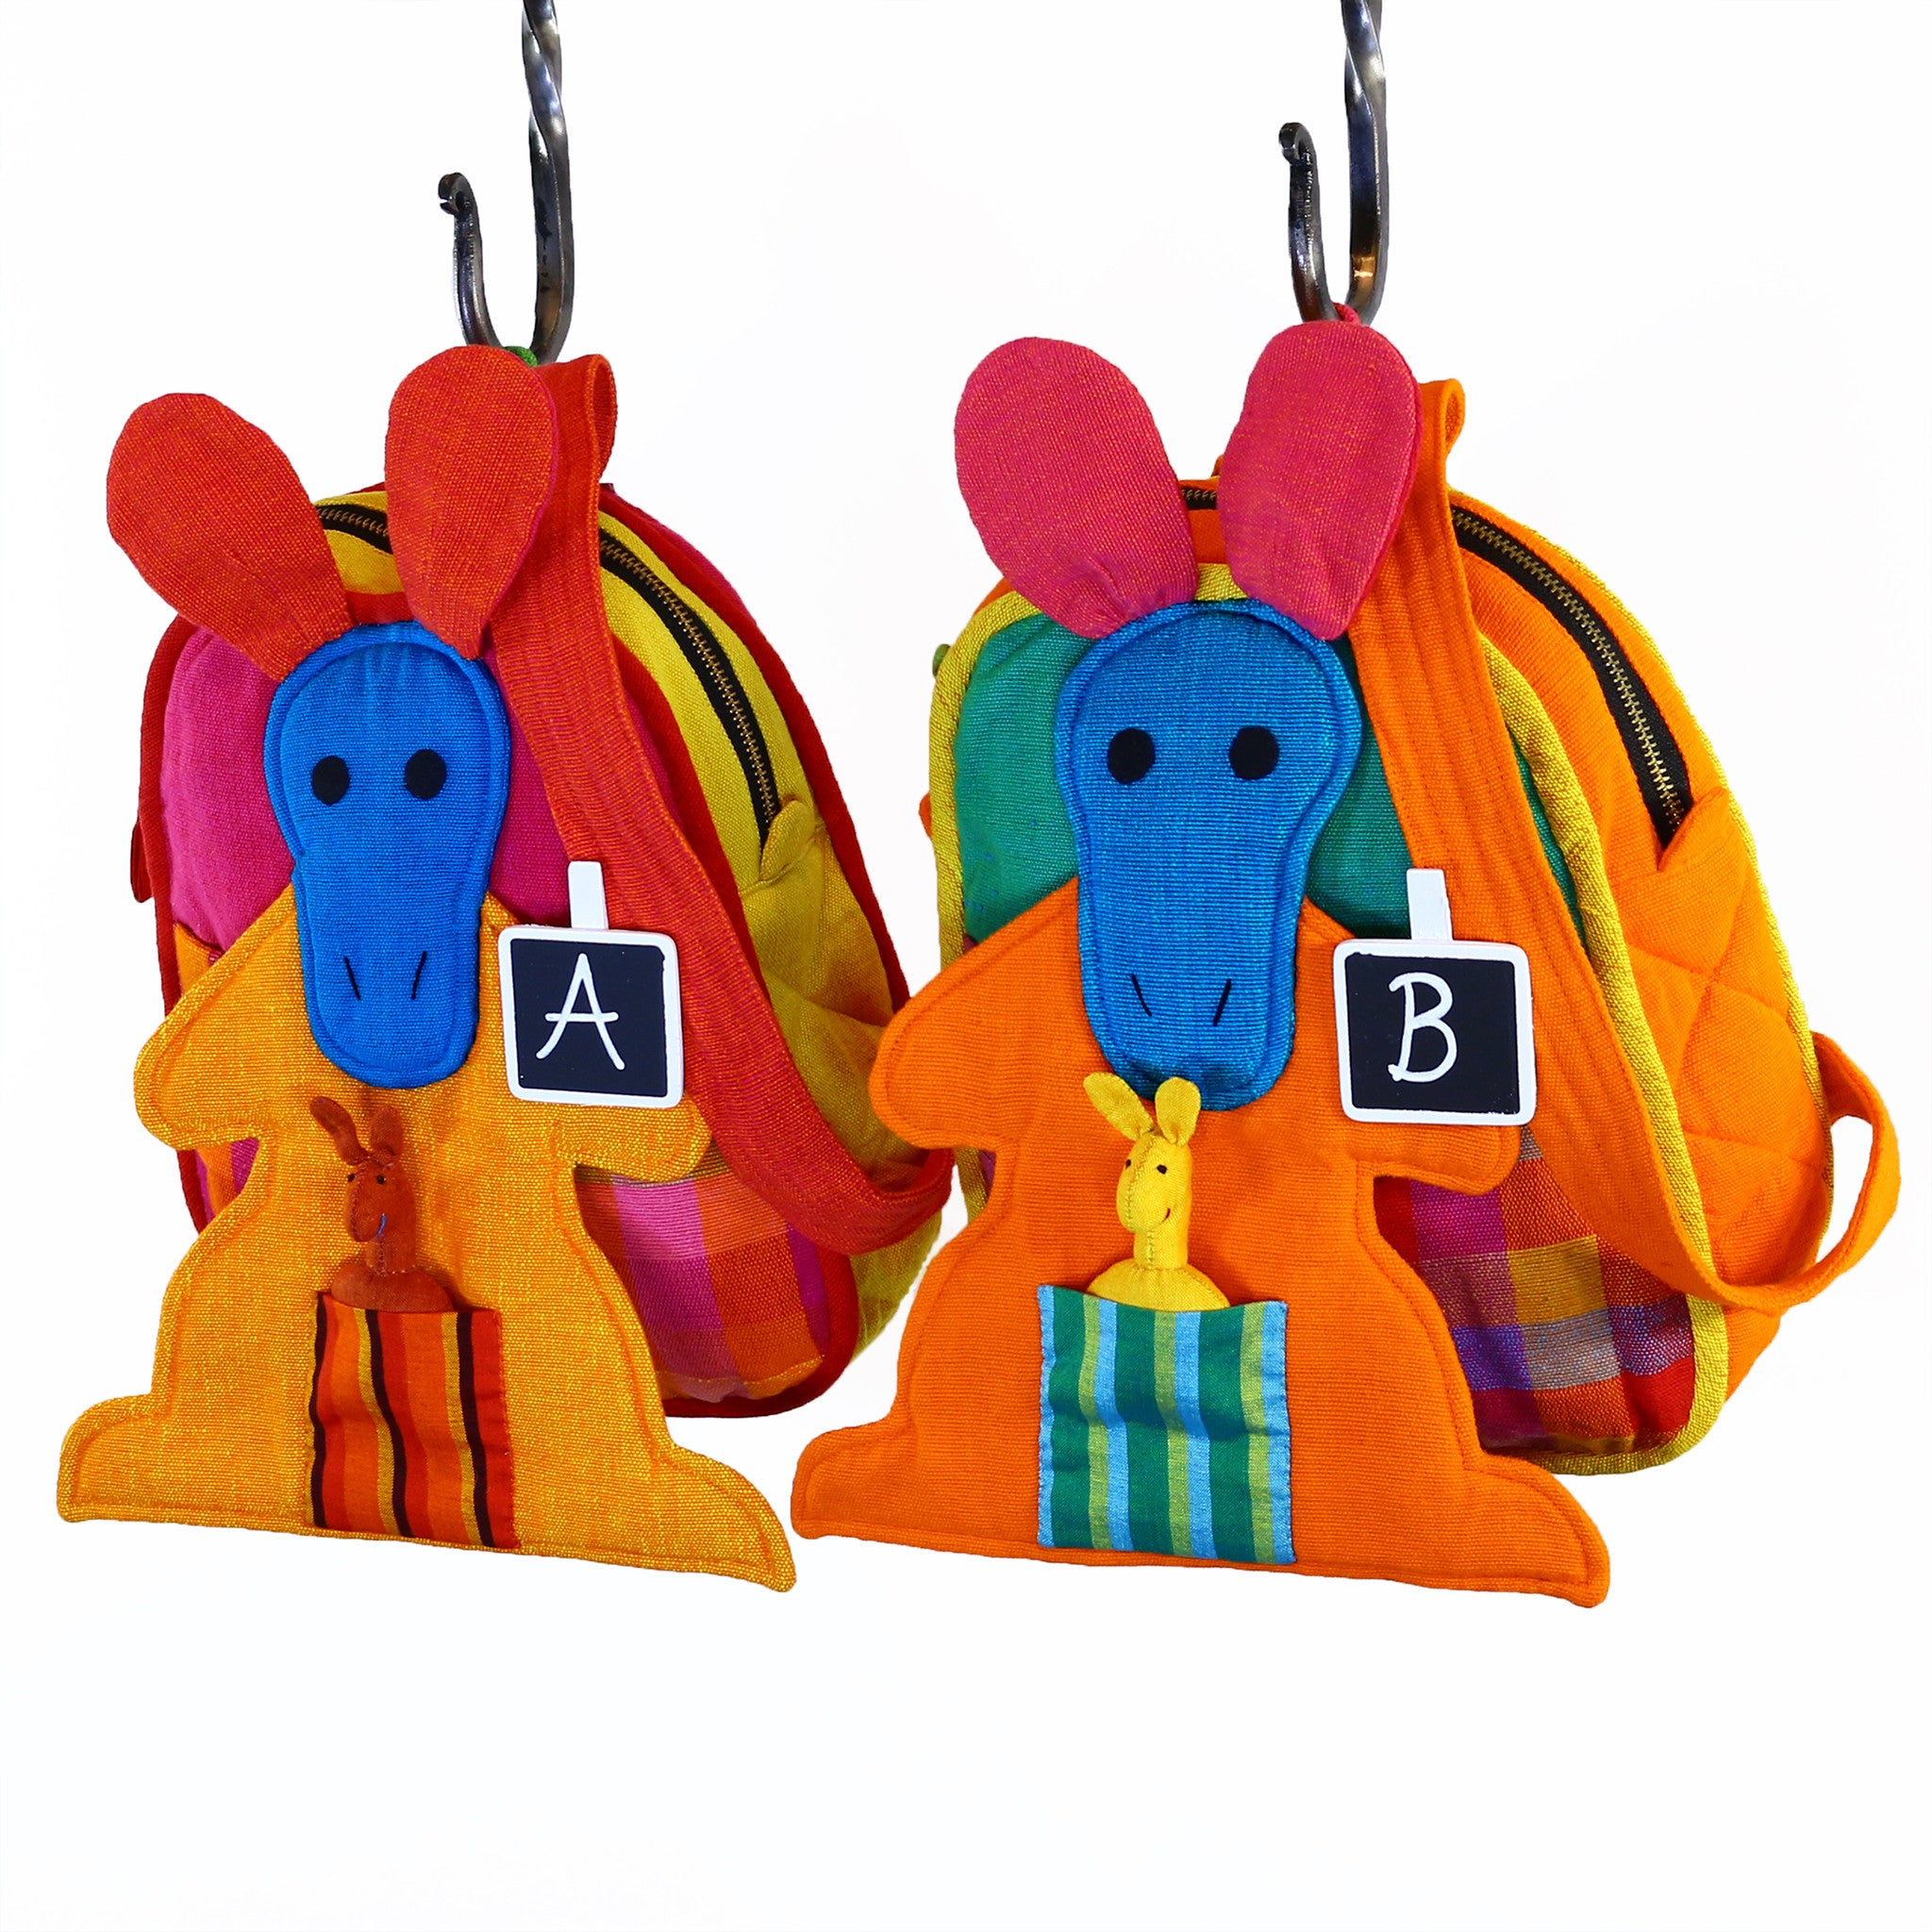 Kangaroo Backpack – Fireworks fabric patterns